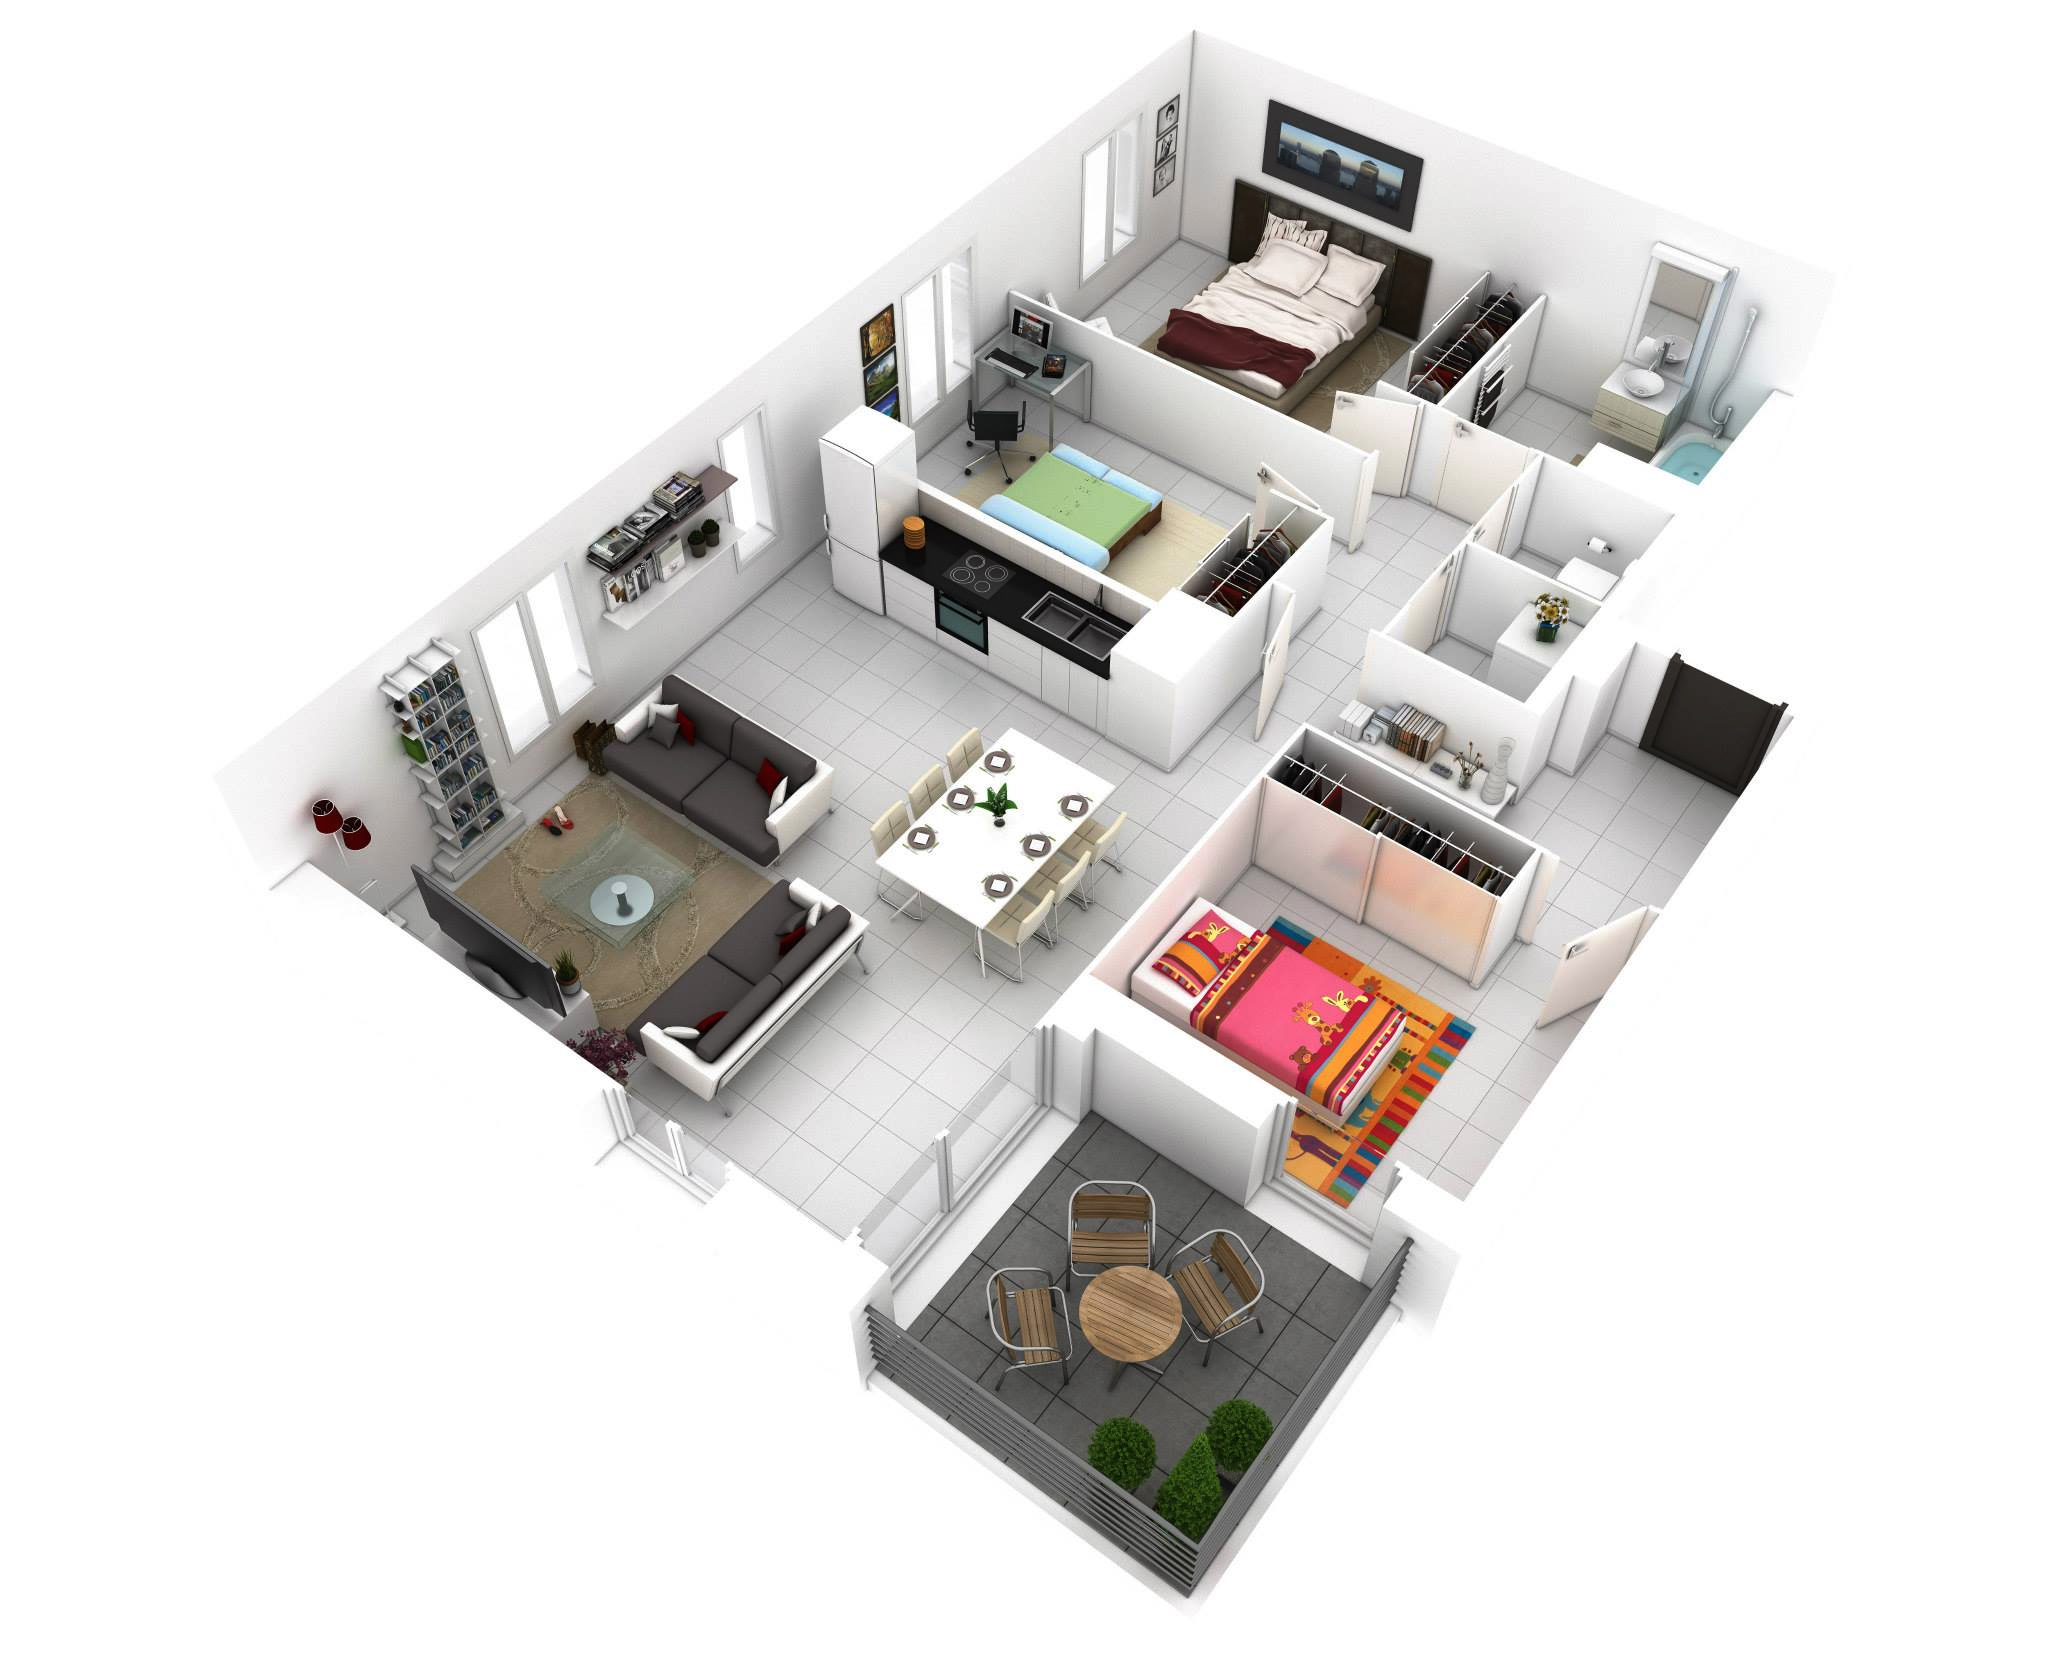 25 More 3 Bedroom 3D Floor Plans Architecture Design